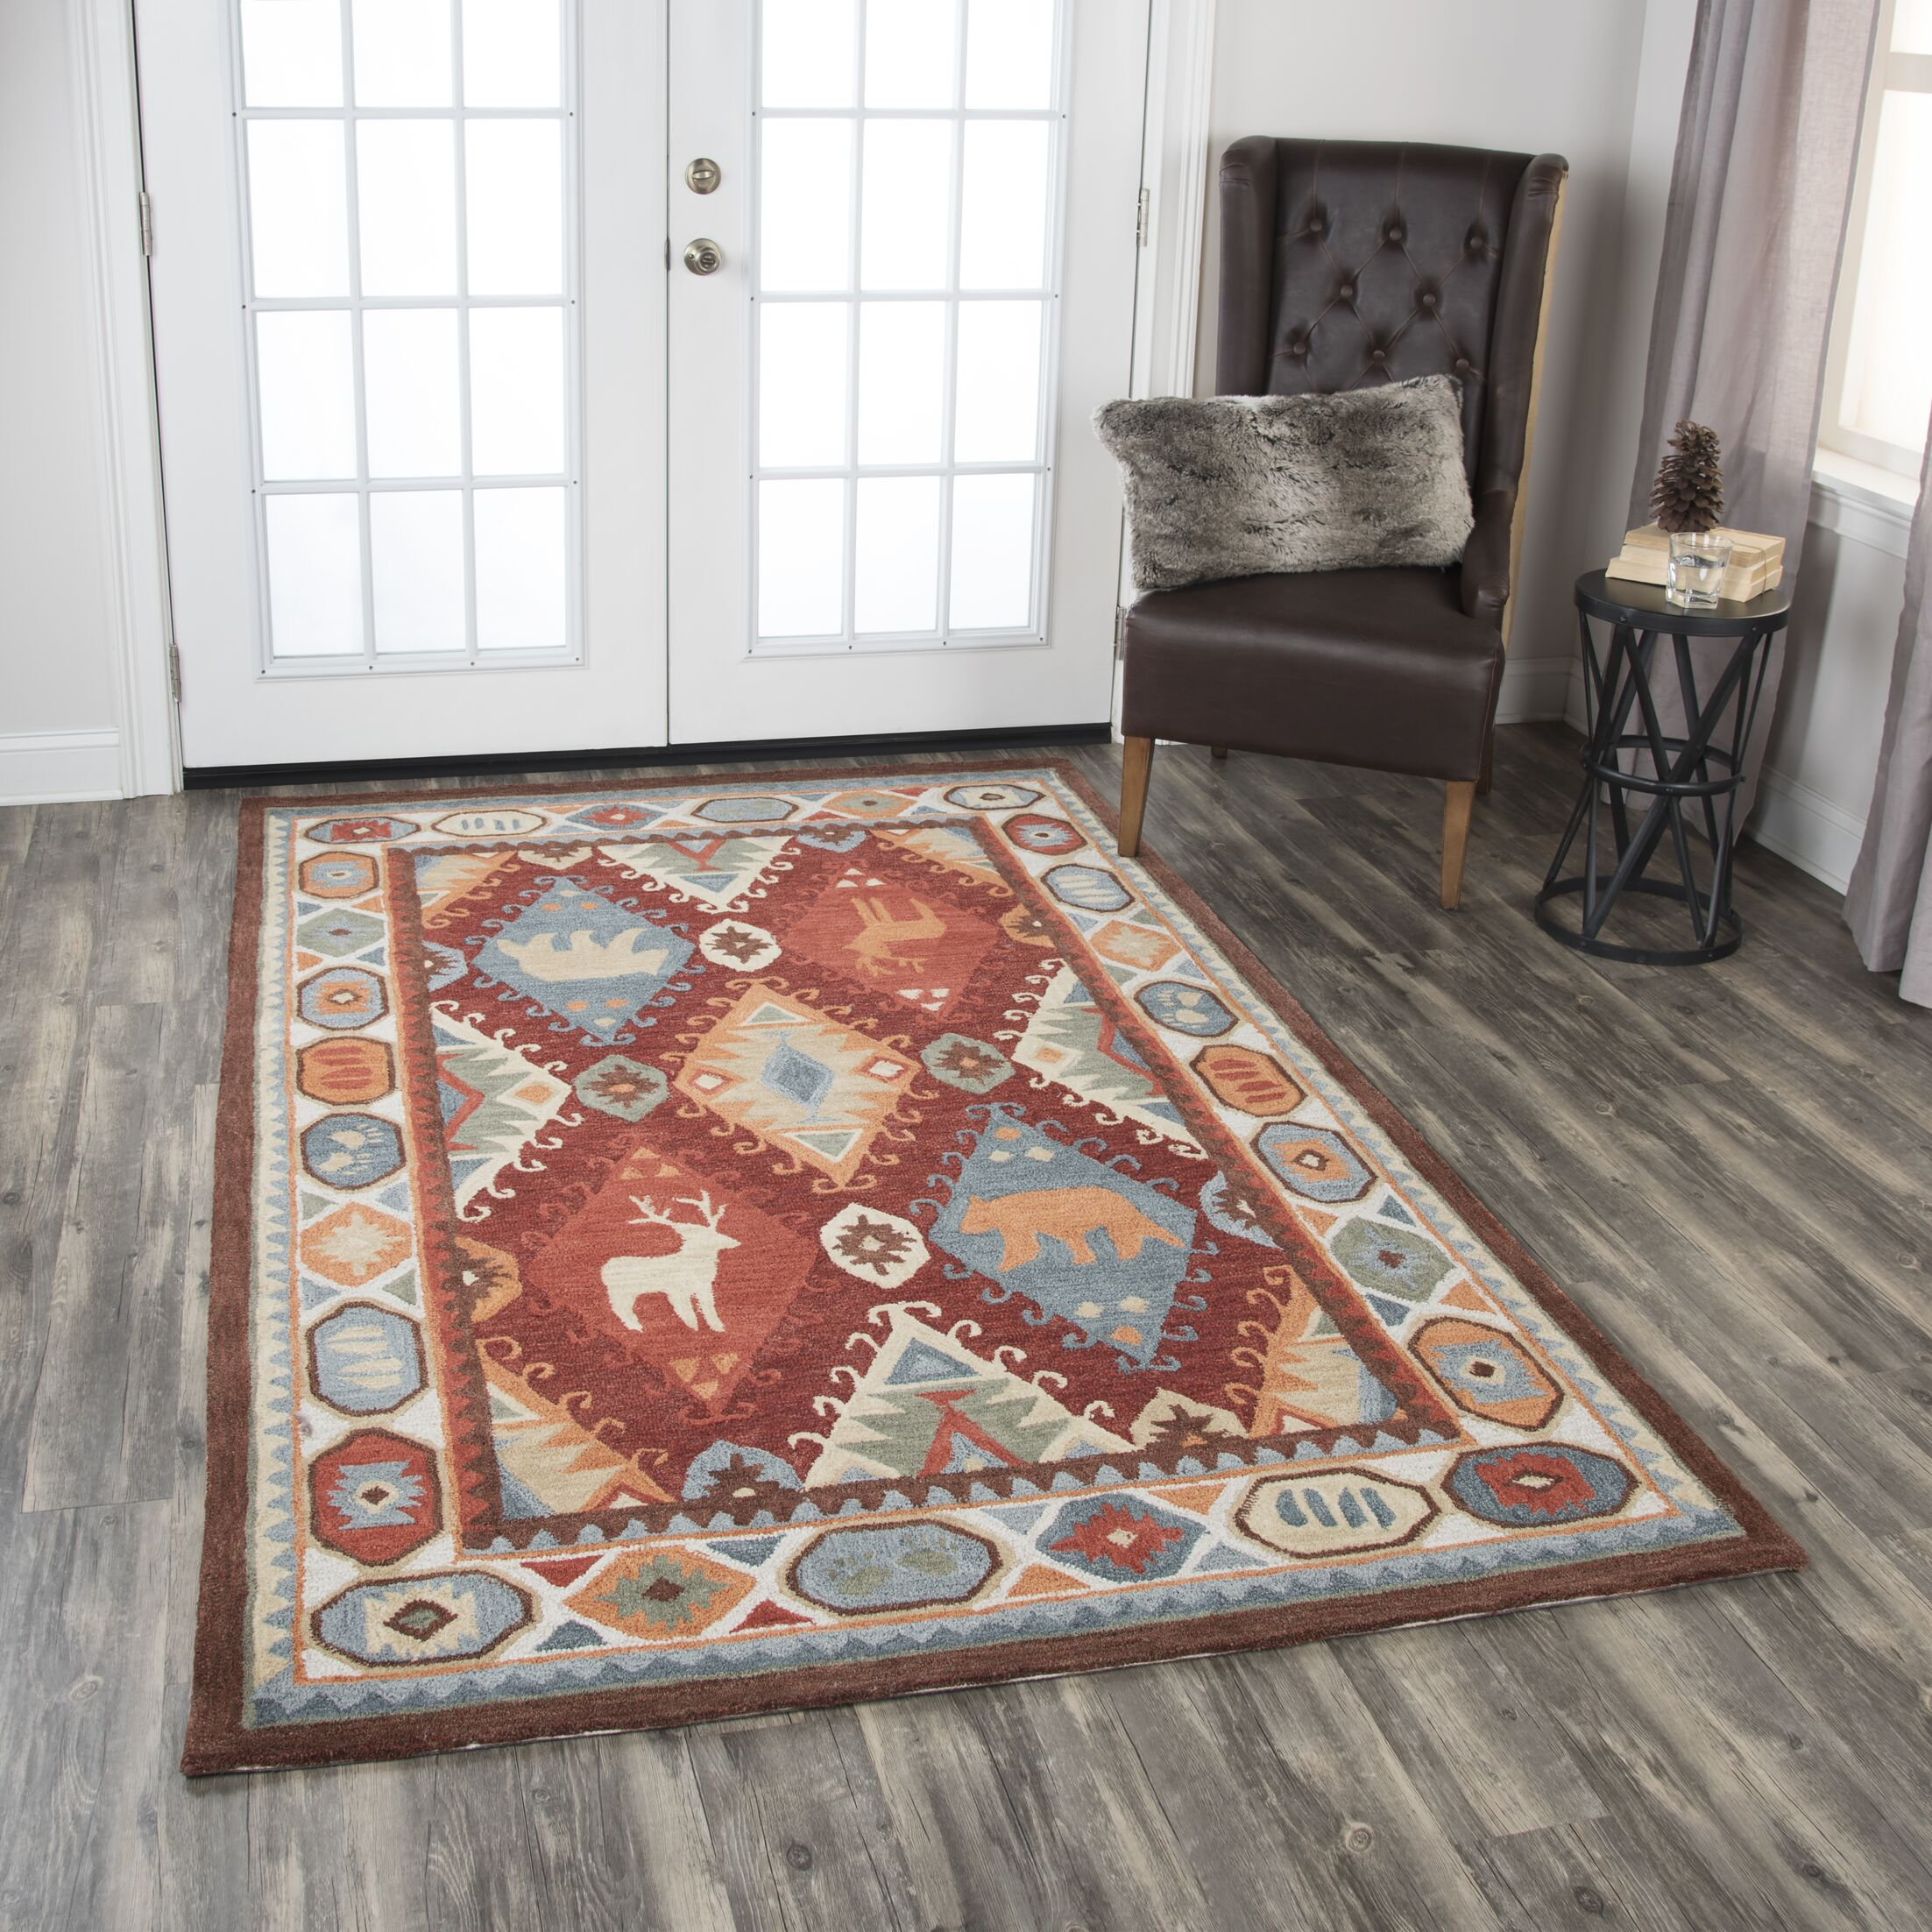 Pouliot Hand-Tufted Wool Red Area Rug Rug Size: Rectangle 8' x 10'